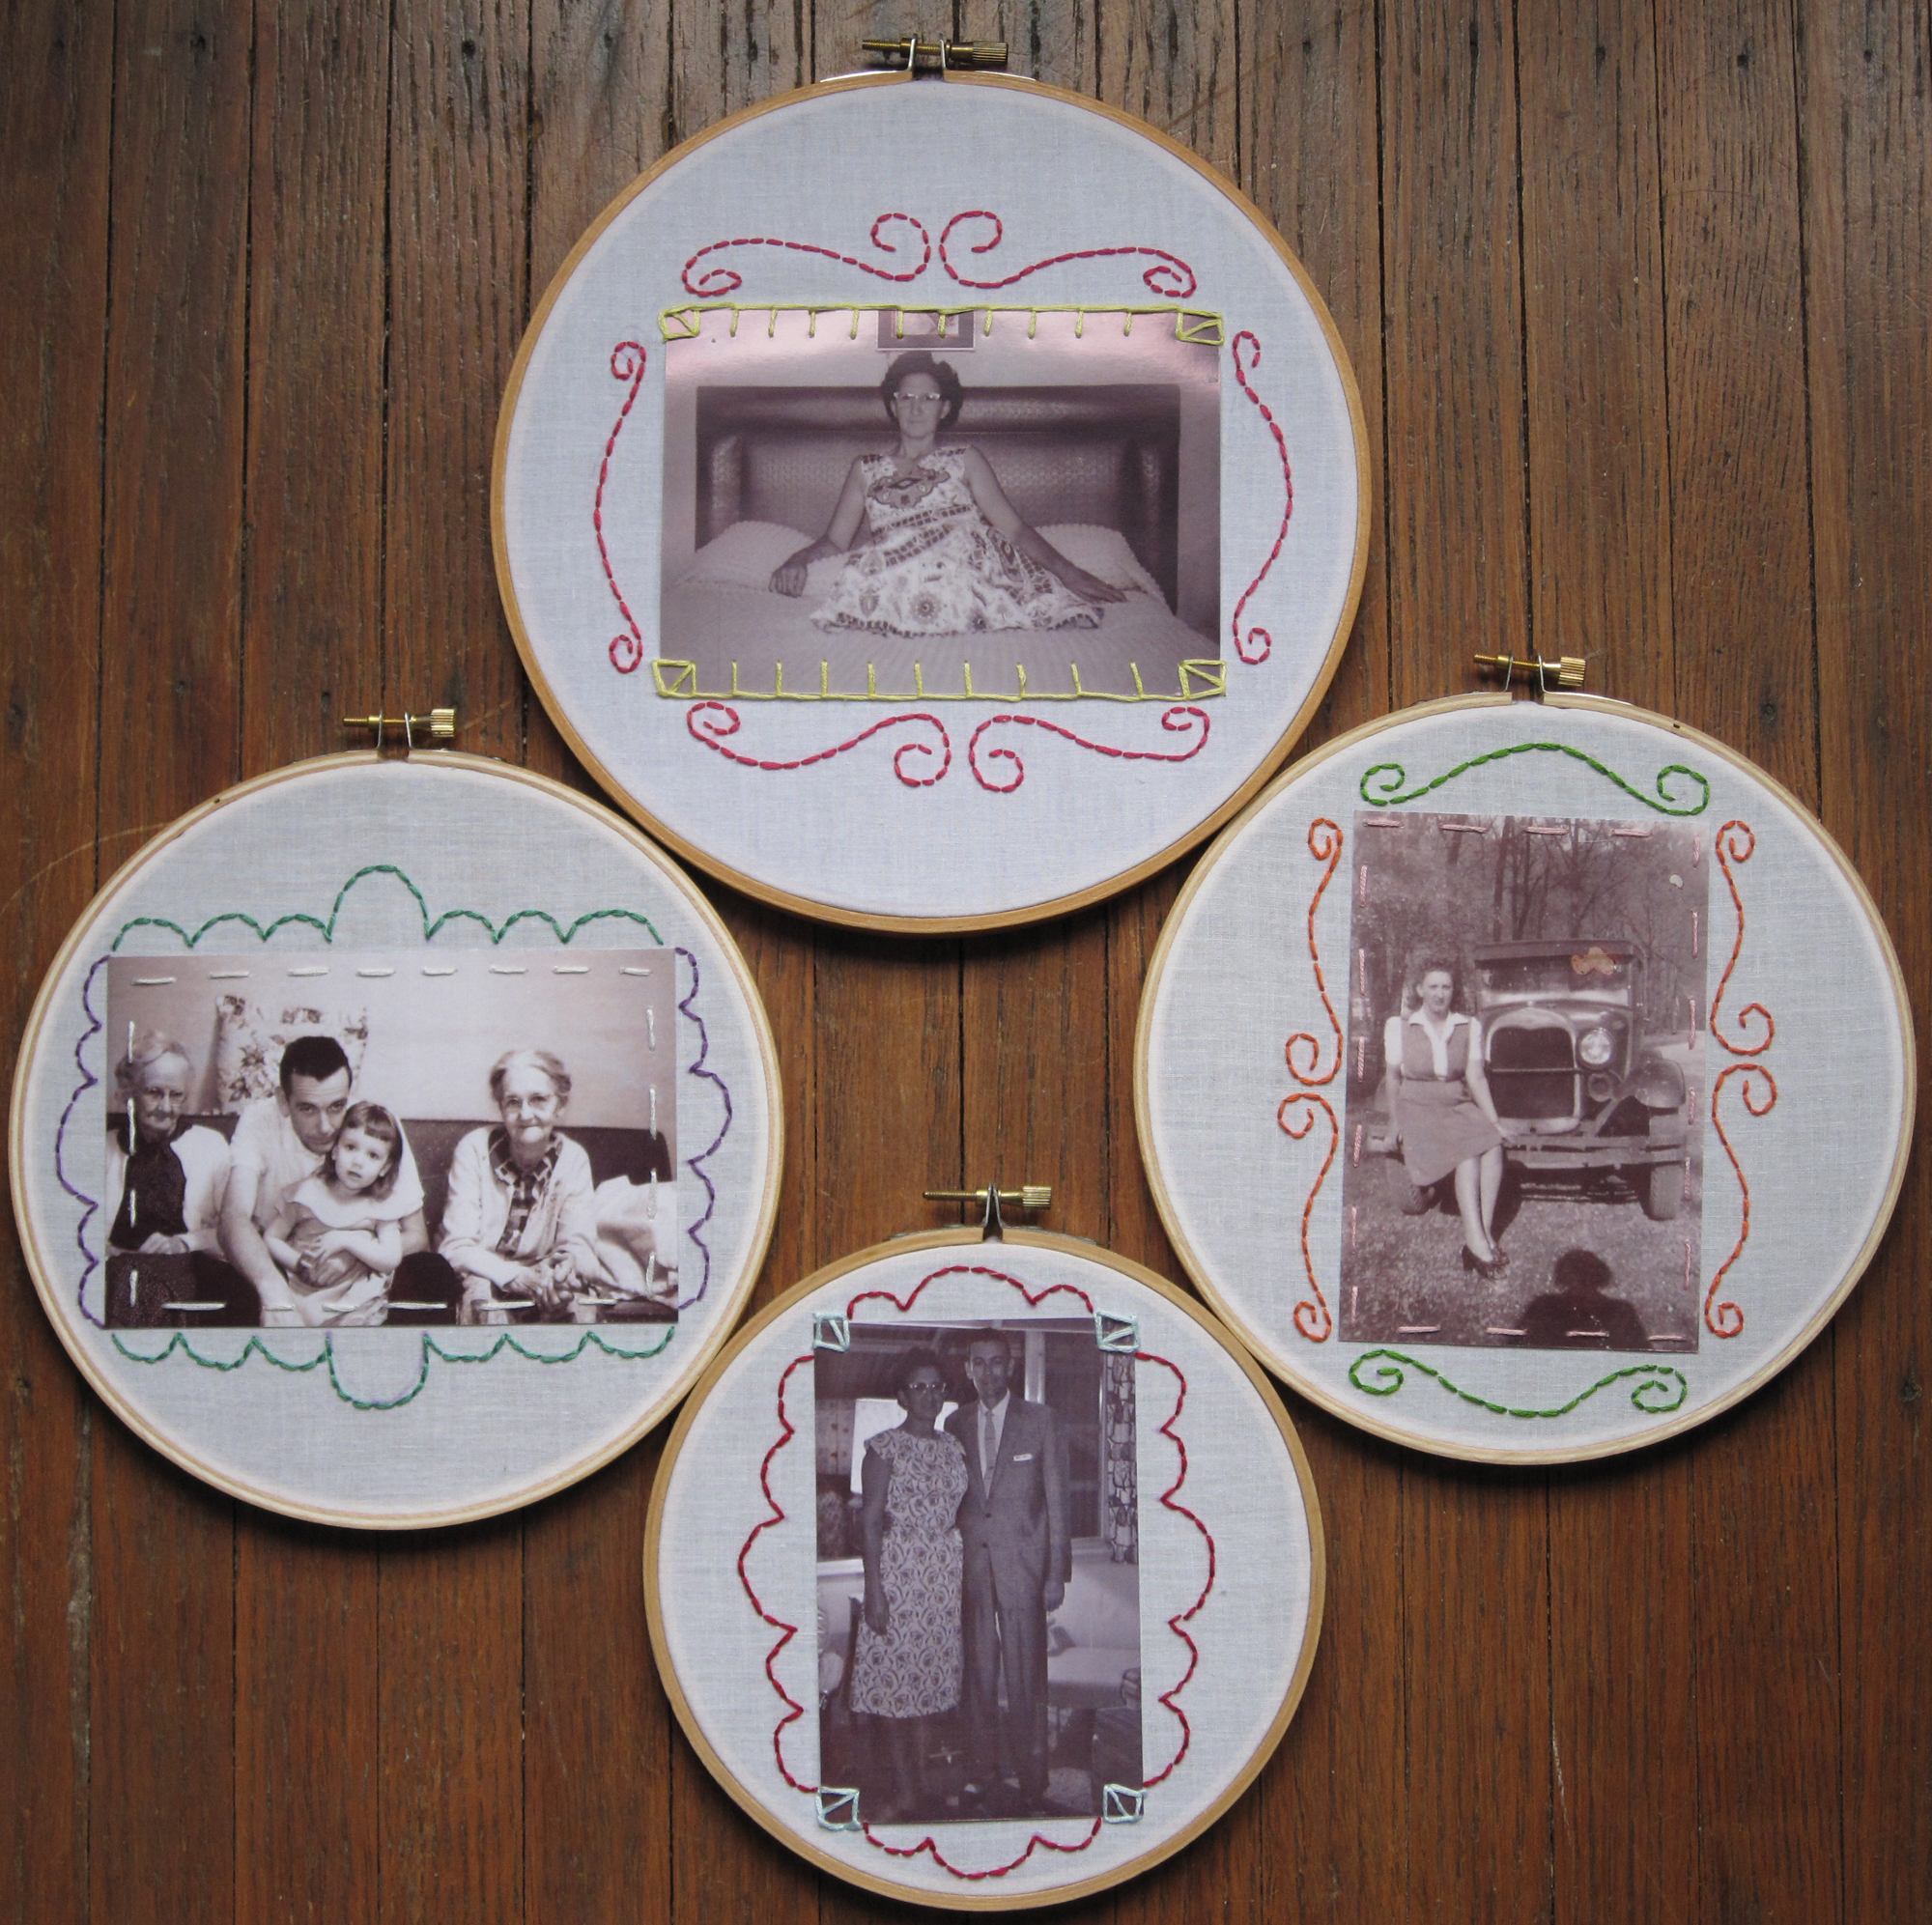 Embroidery hoop picture frame!